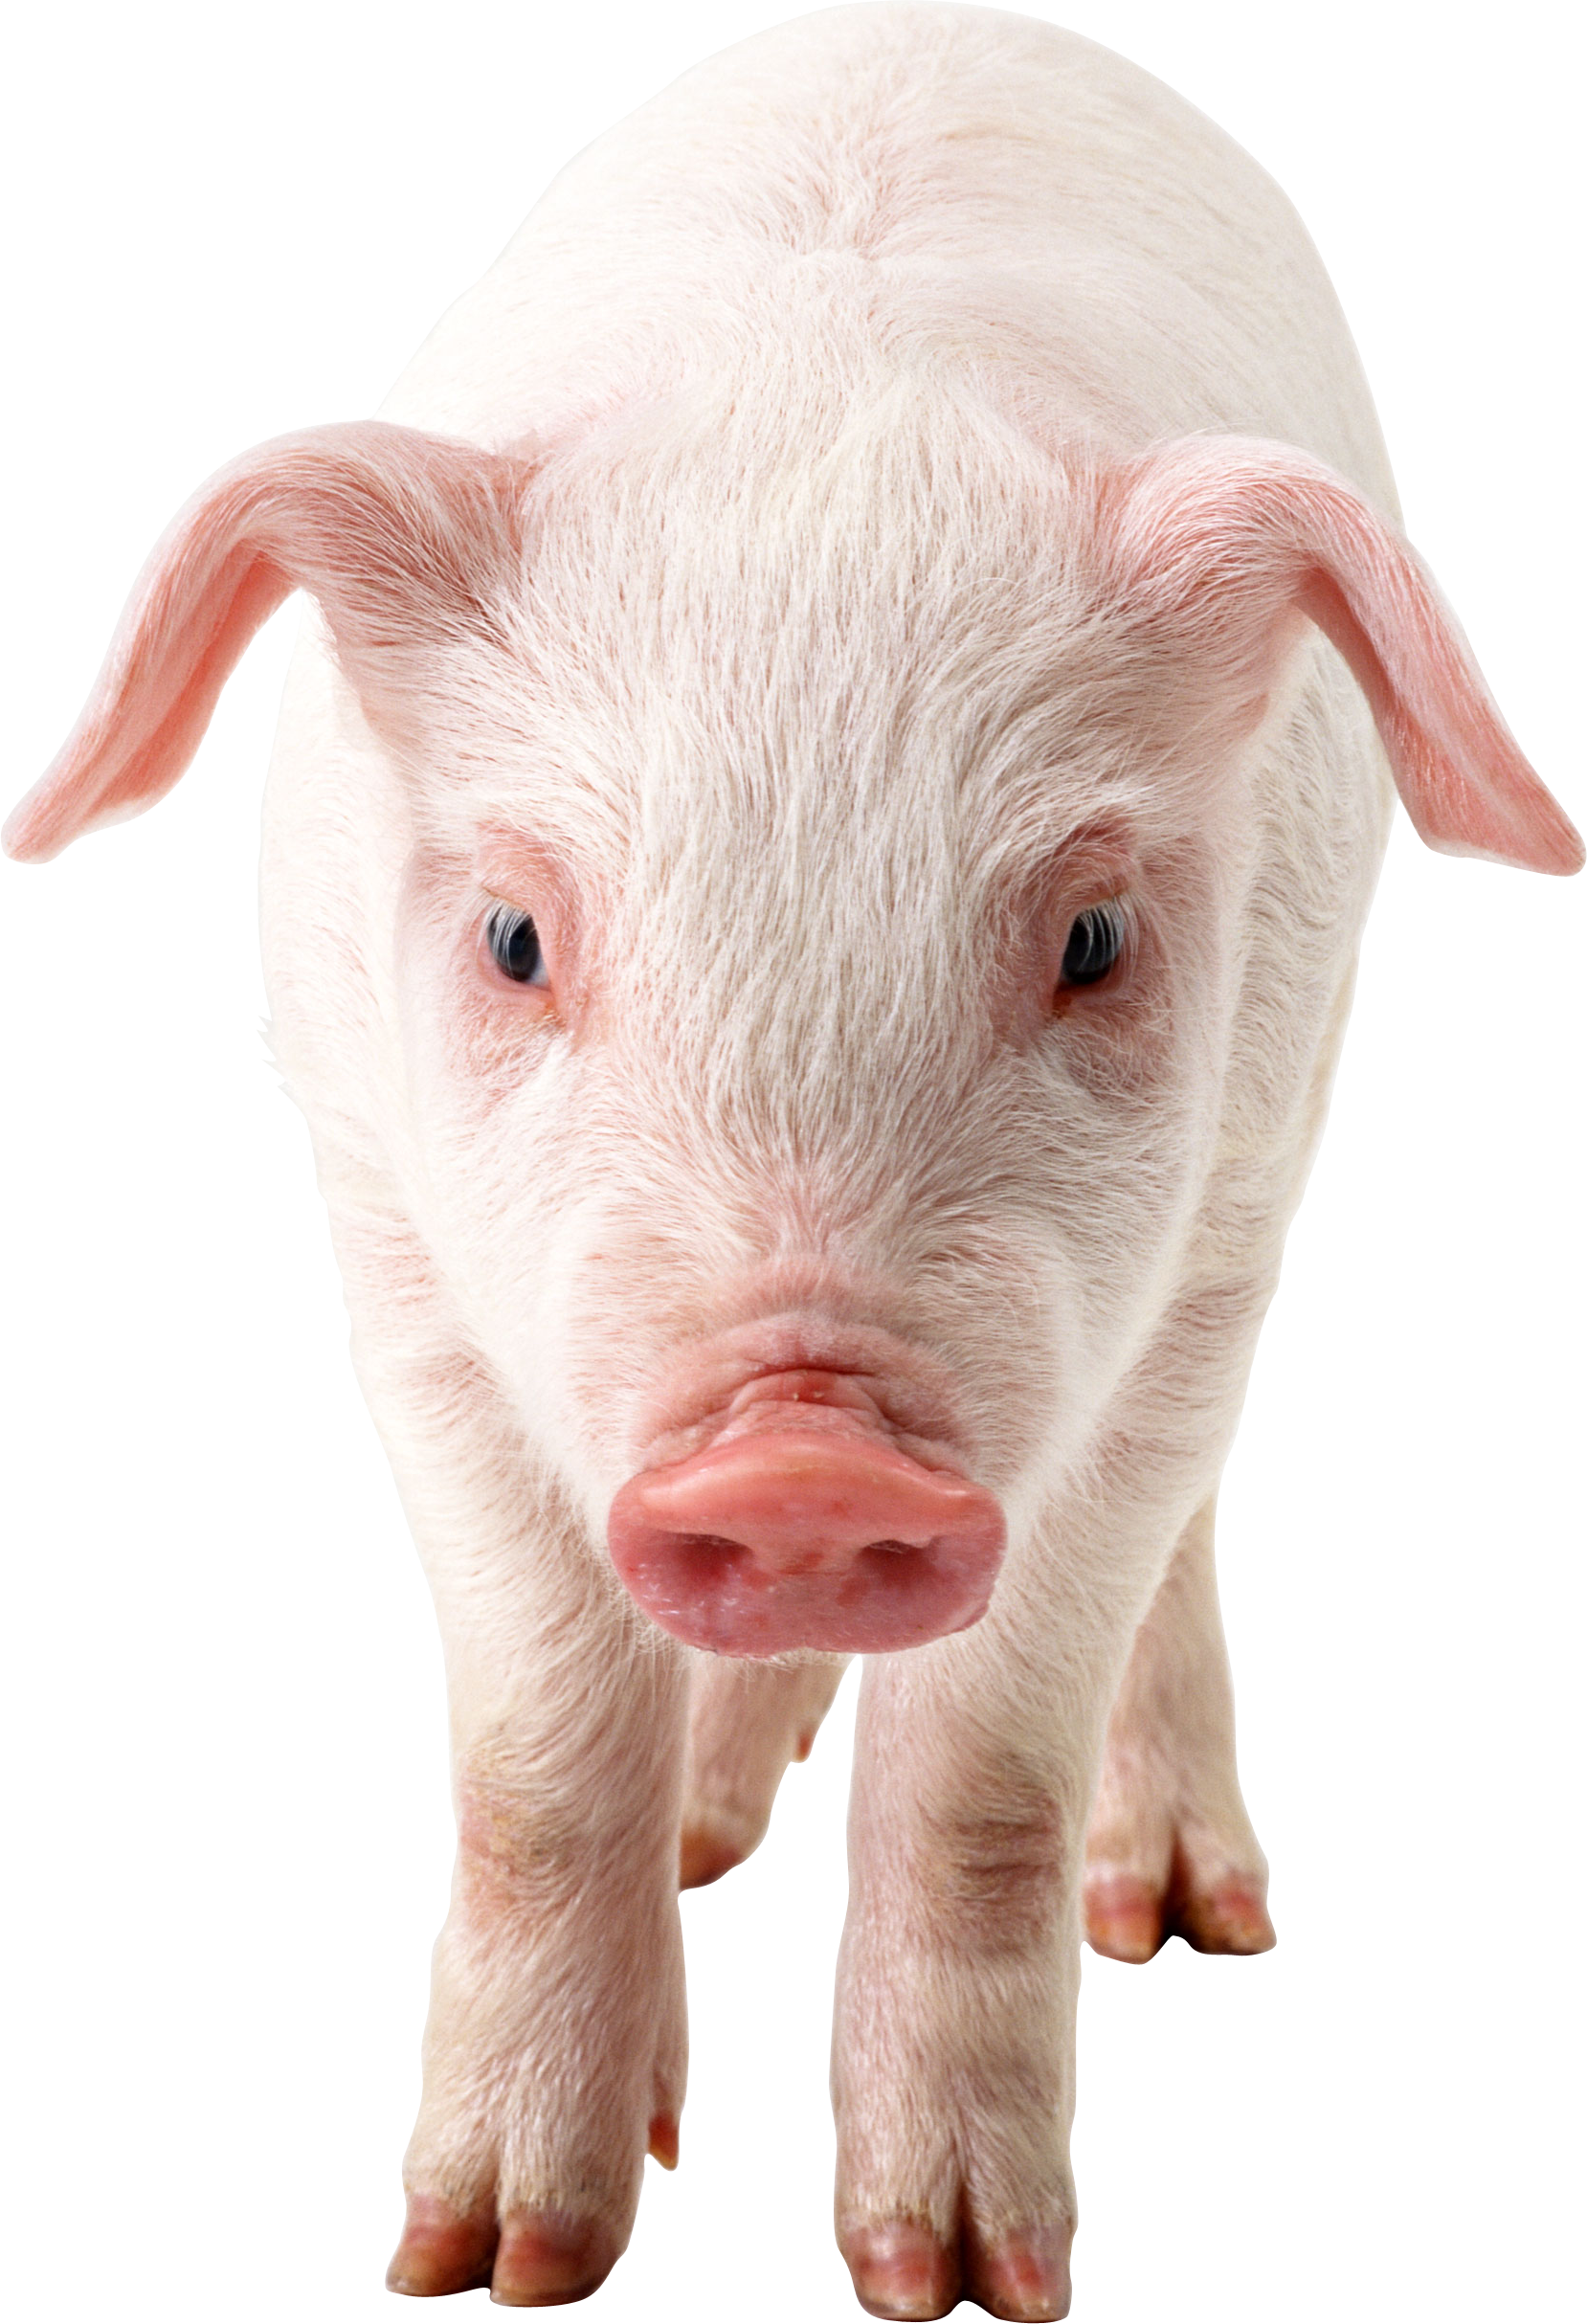 Pig Frontview Png Image Pig Images Pig Png Photoshopped Animals